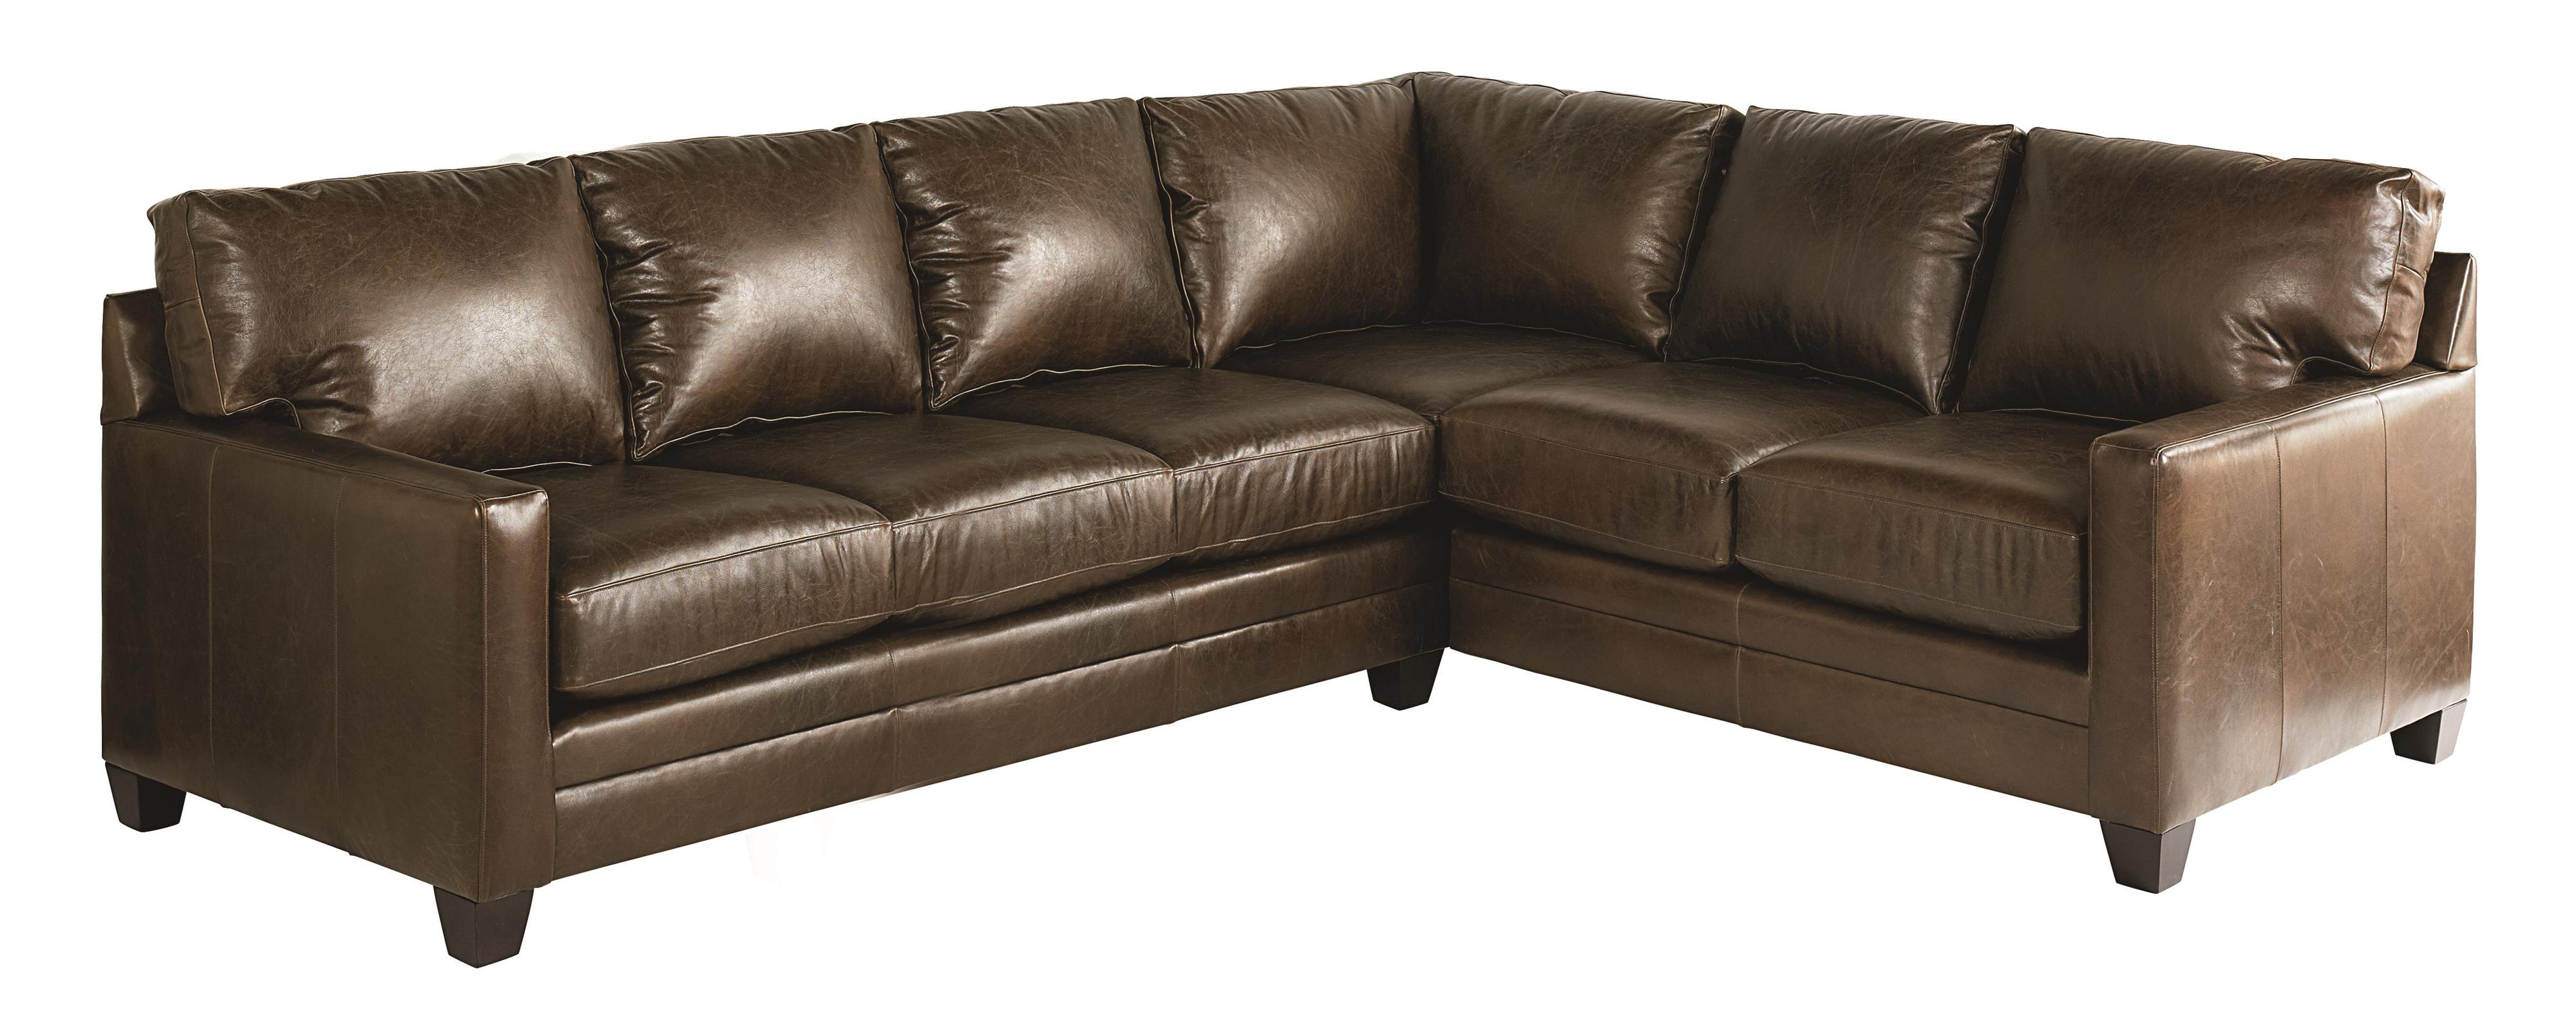 Ladson Sectional Sofa by Bassett at Bassett of Cool Springs